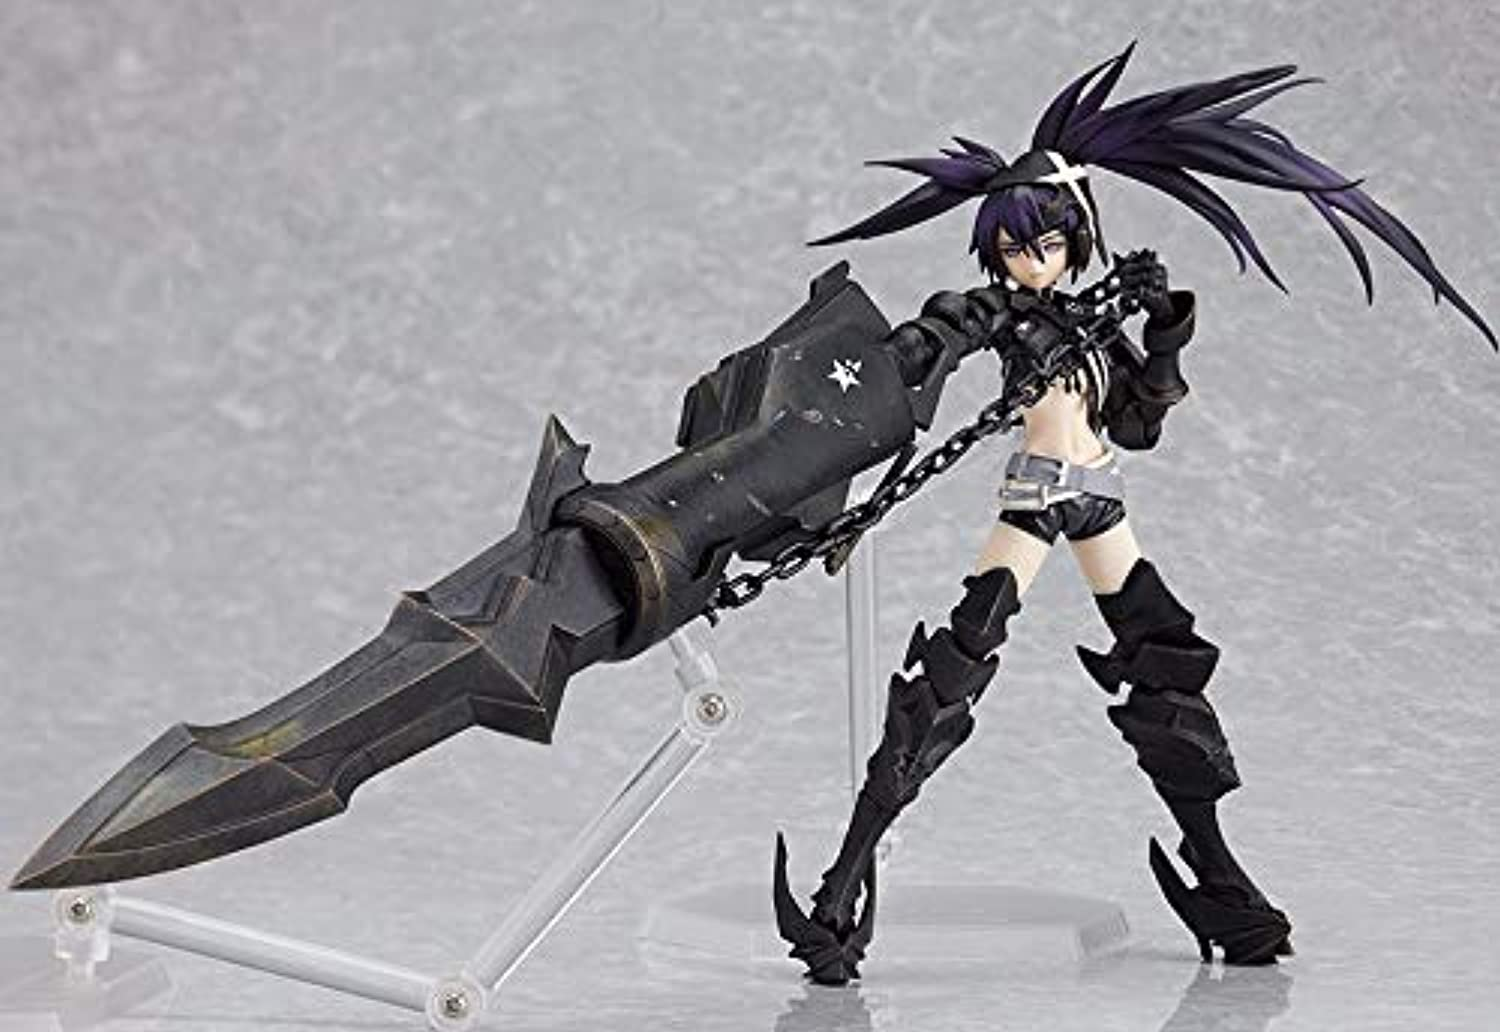 Allegro Huyer Black Rockshooter Action Figure SP041 Insane Black Rock Shooter 150mm Anime Shooter Mato Kuroi Collectible Model Toy(No Box Packing)